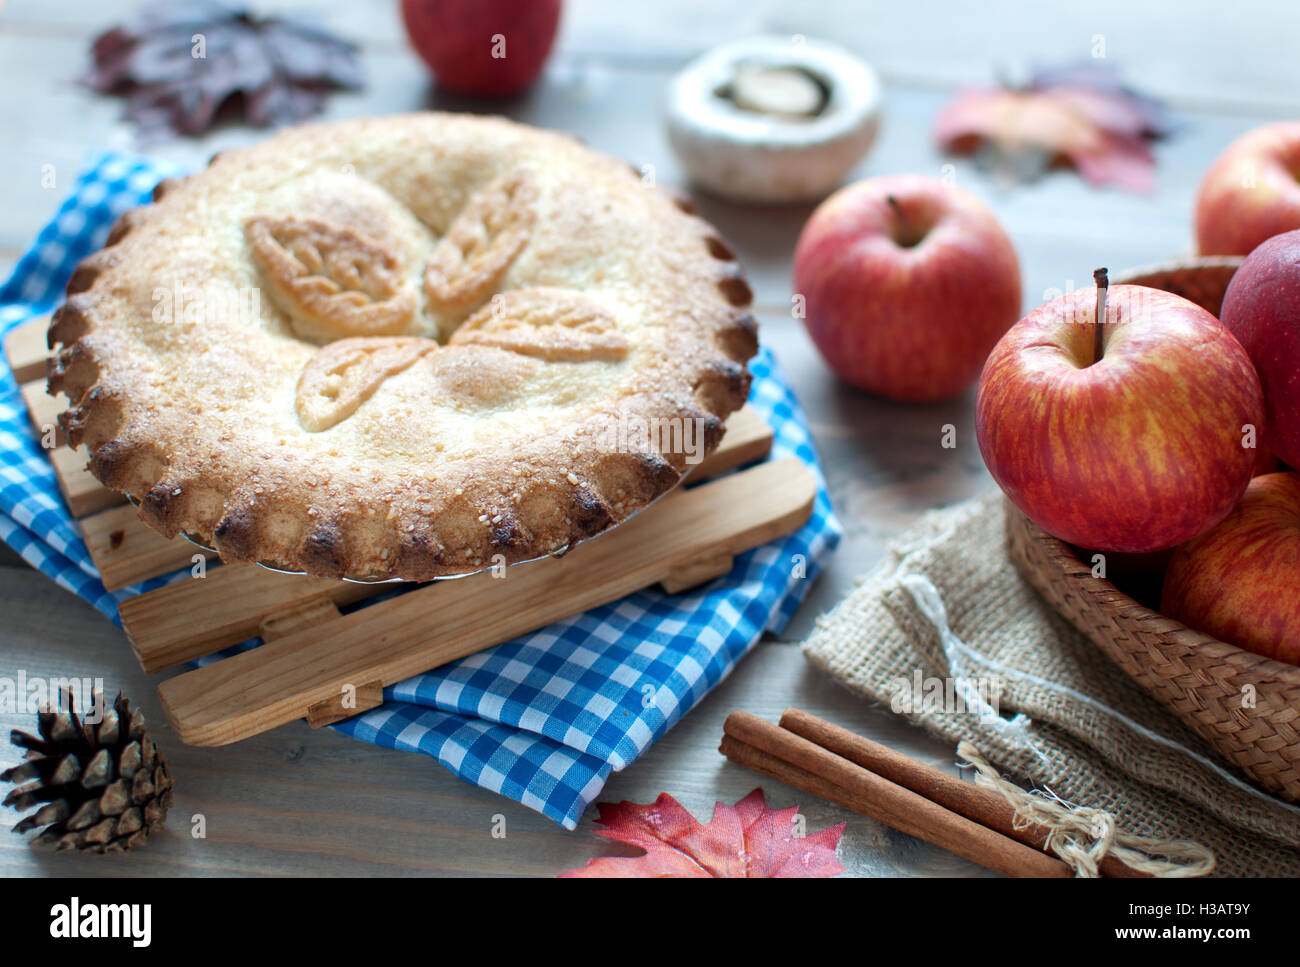 Apple pie with fruit ingredients autumn leaves and cinammon sticks on a wooden table - Stock Image